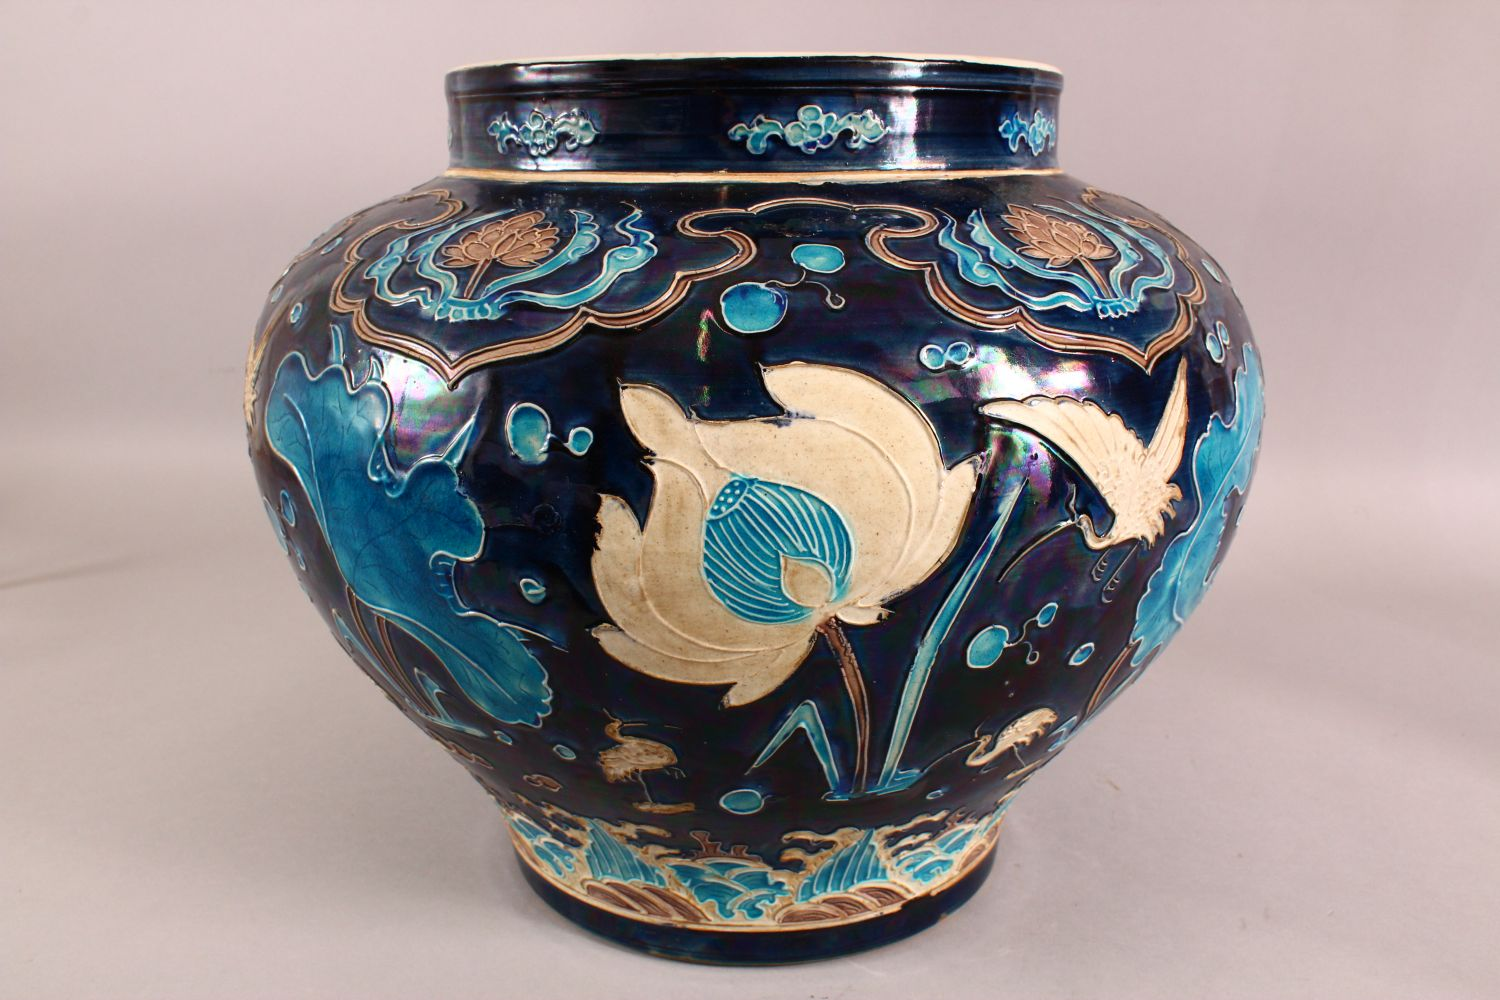 A LARGE CHINESE FAHUHA VASE, decorated with relief linework depicting lotus, lily pads and egrets - Image 4 of 7